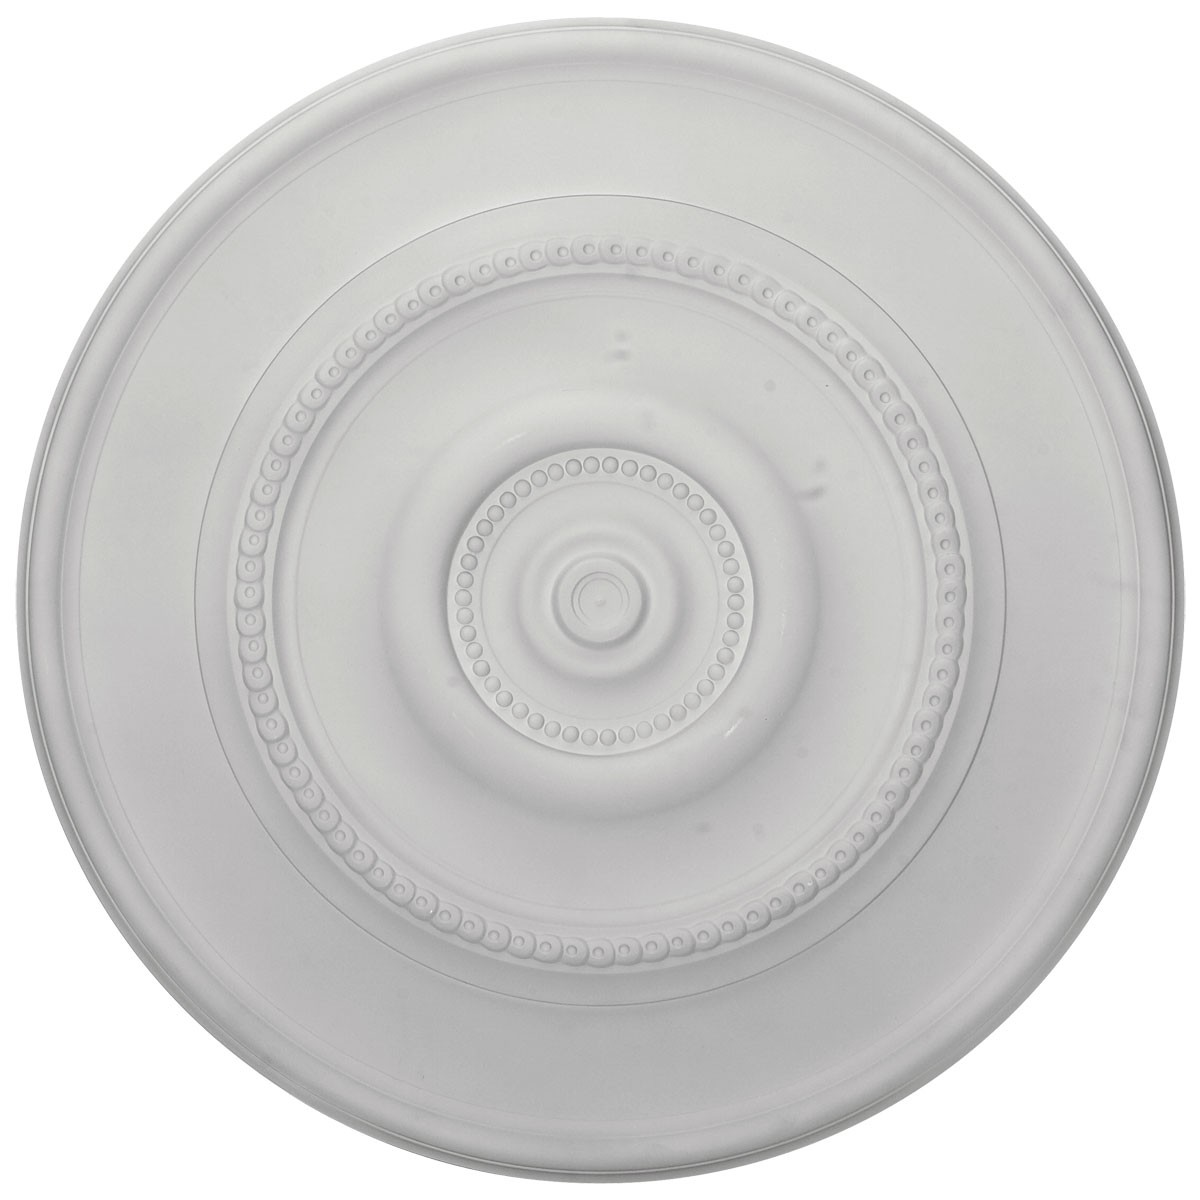 """EM-CM30DY - 30""""OD x 2 1/4""""P Dylar Ceiling Medallion (Fits Canopies up to 6 1/4"""")"""